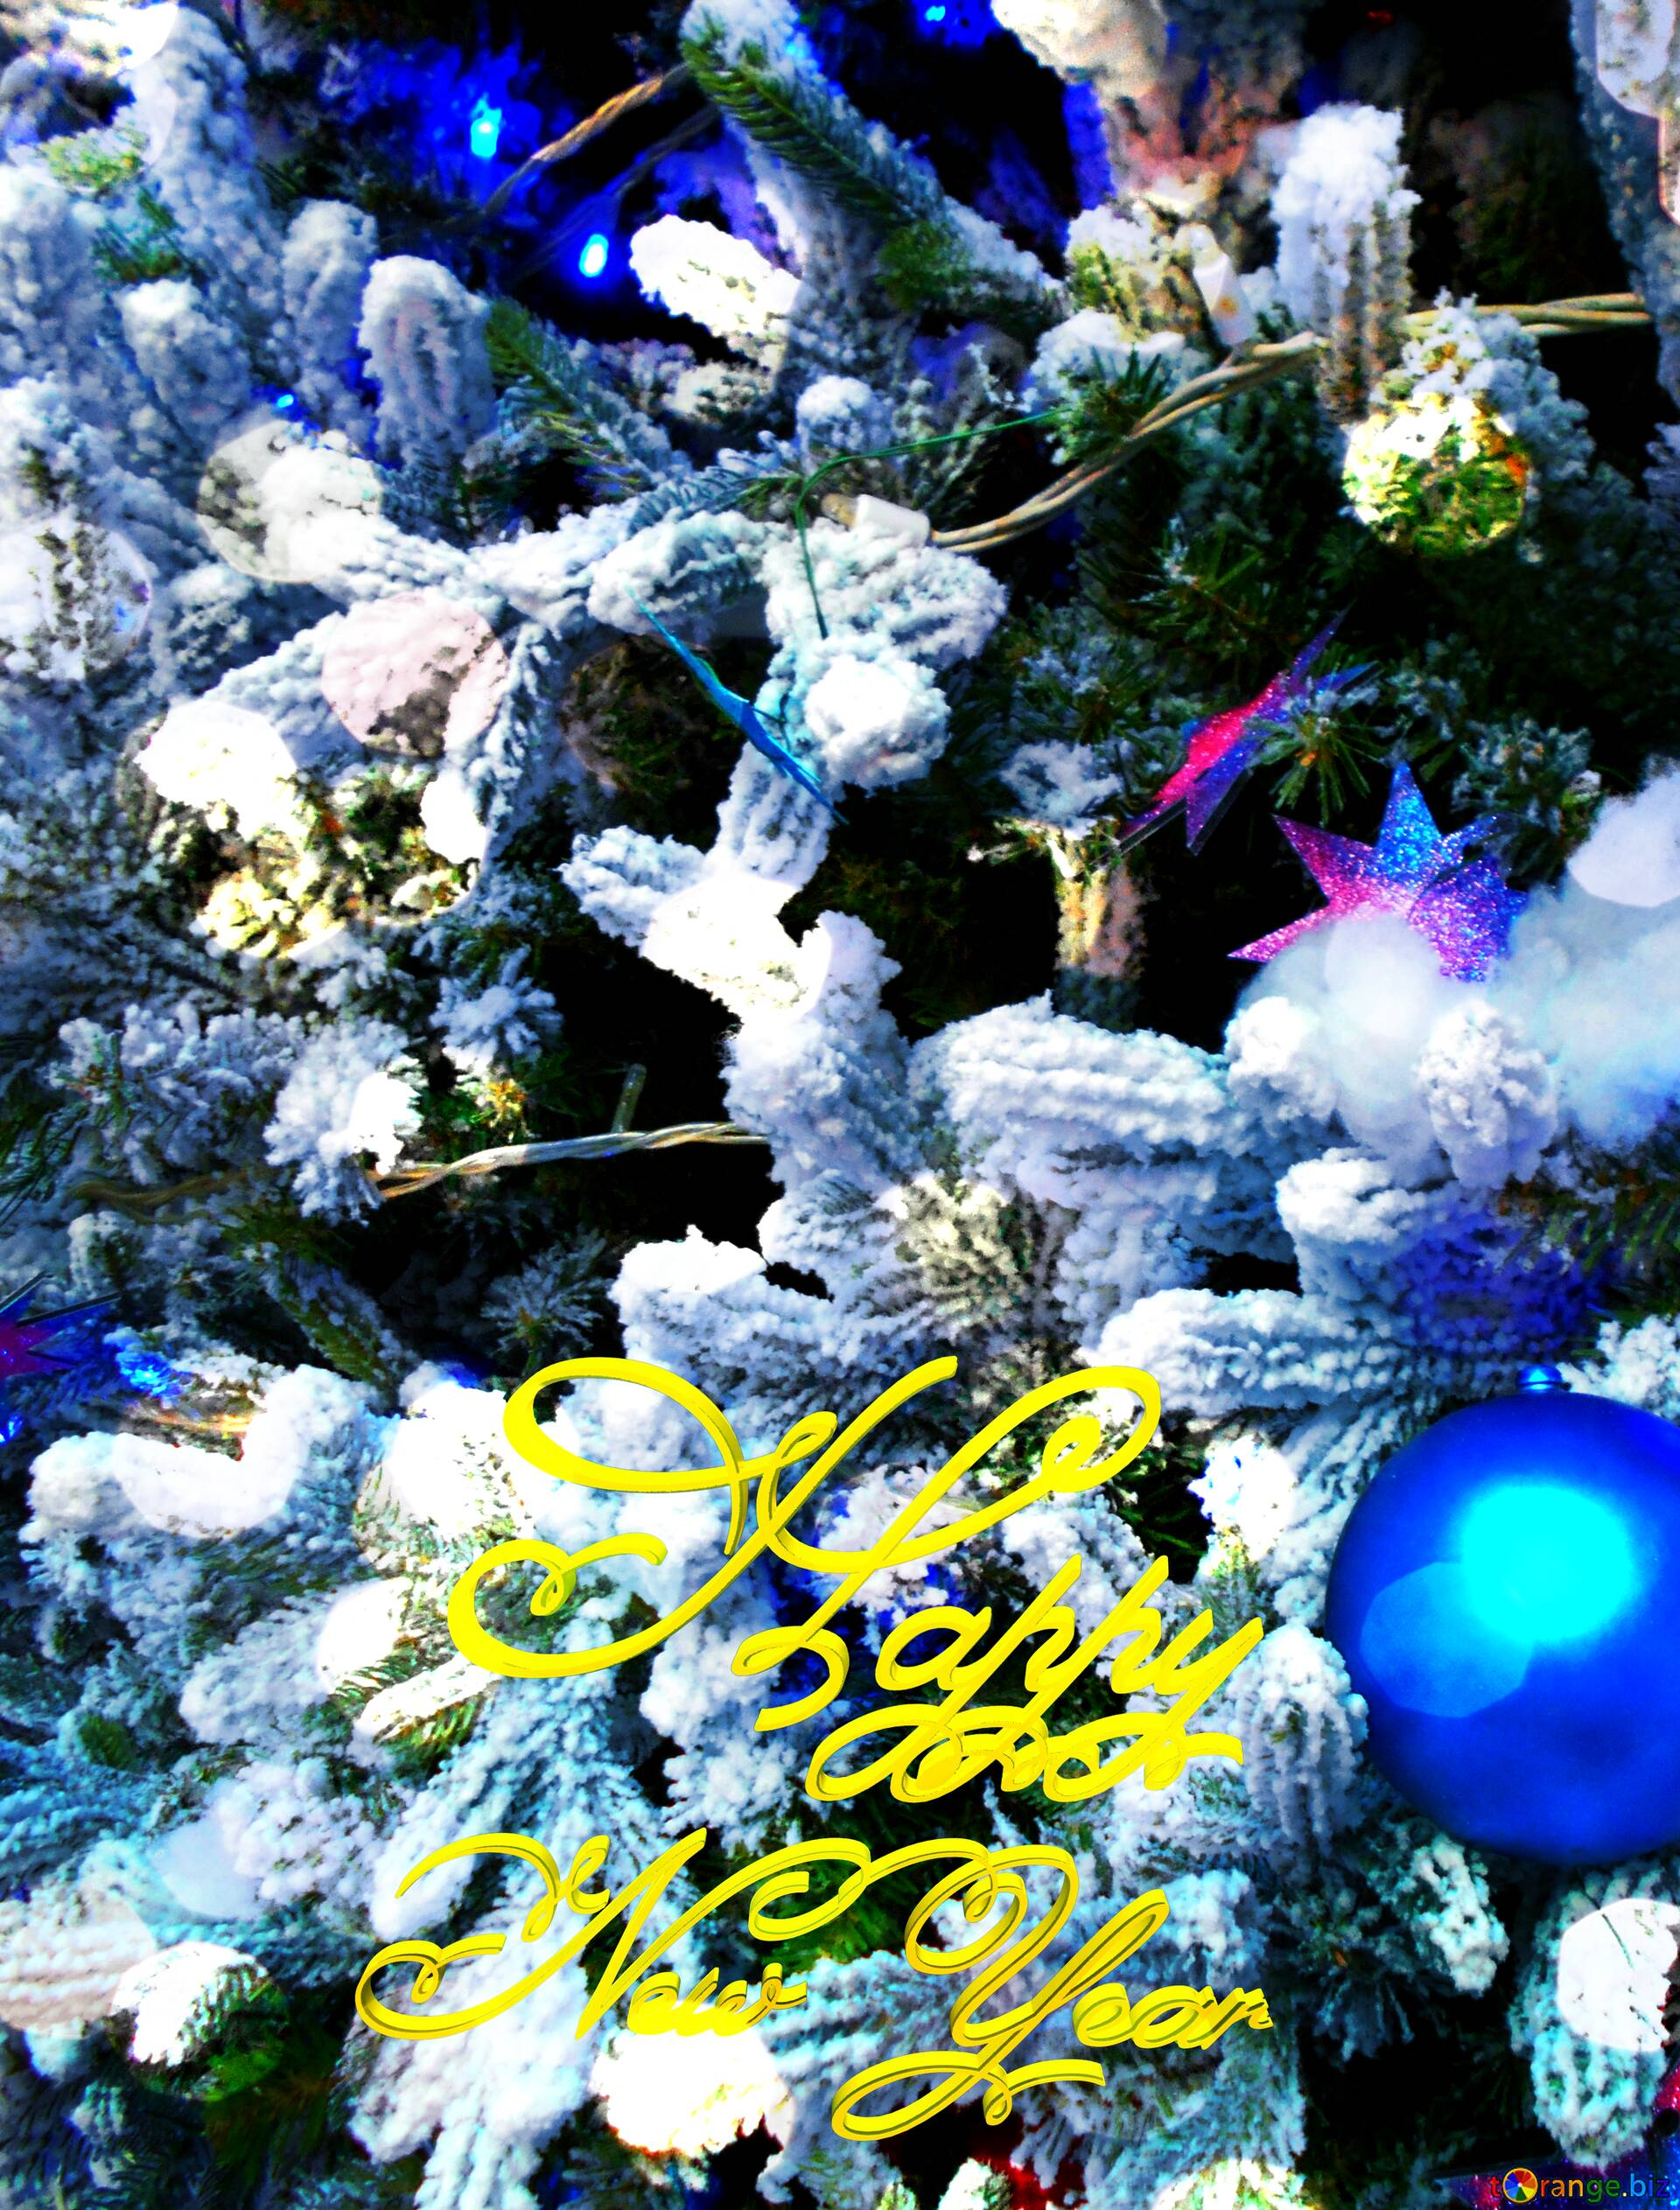 Download Free Picture Christmas Tree Xmas Blue Ornament Happy New Year 3d Card On Cc By License Free Image Stock Torange Biz Fx 210494